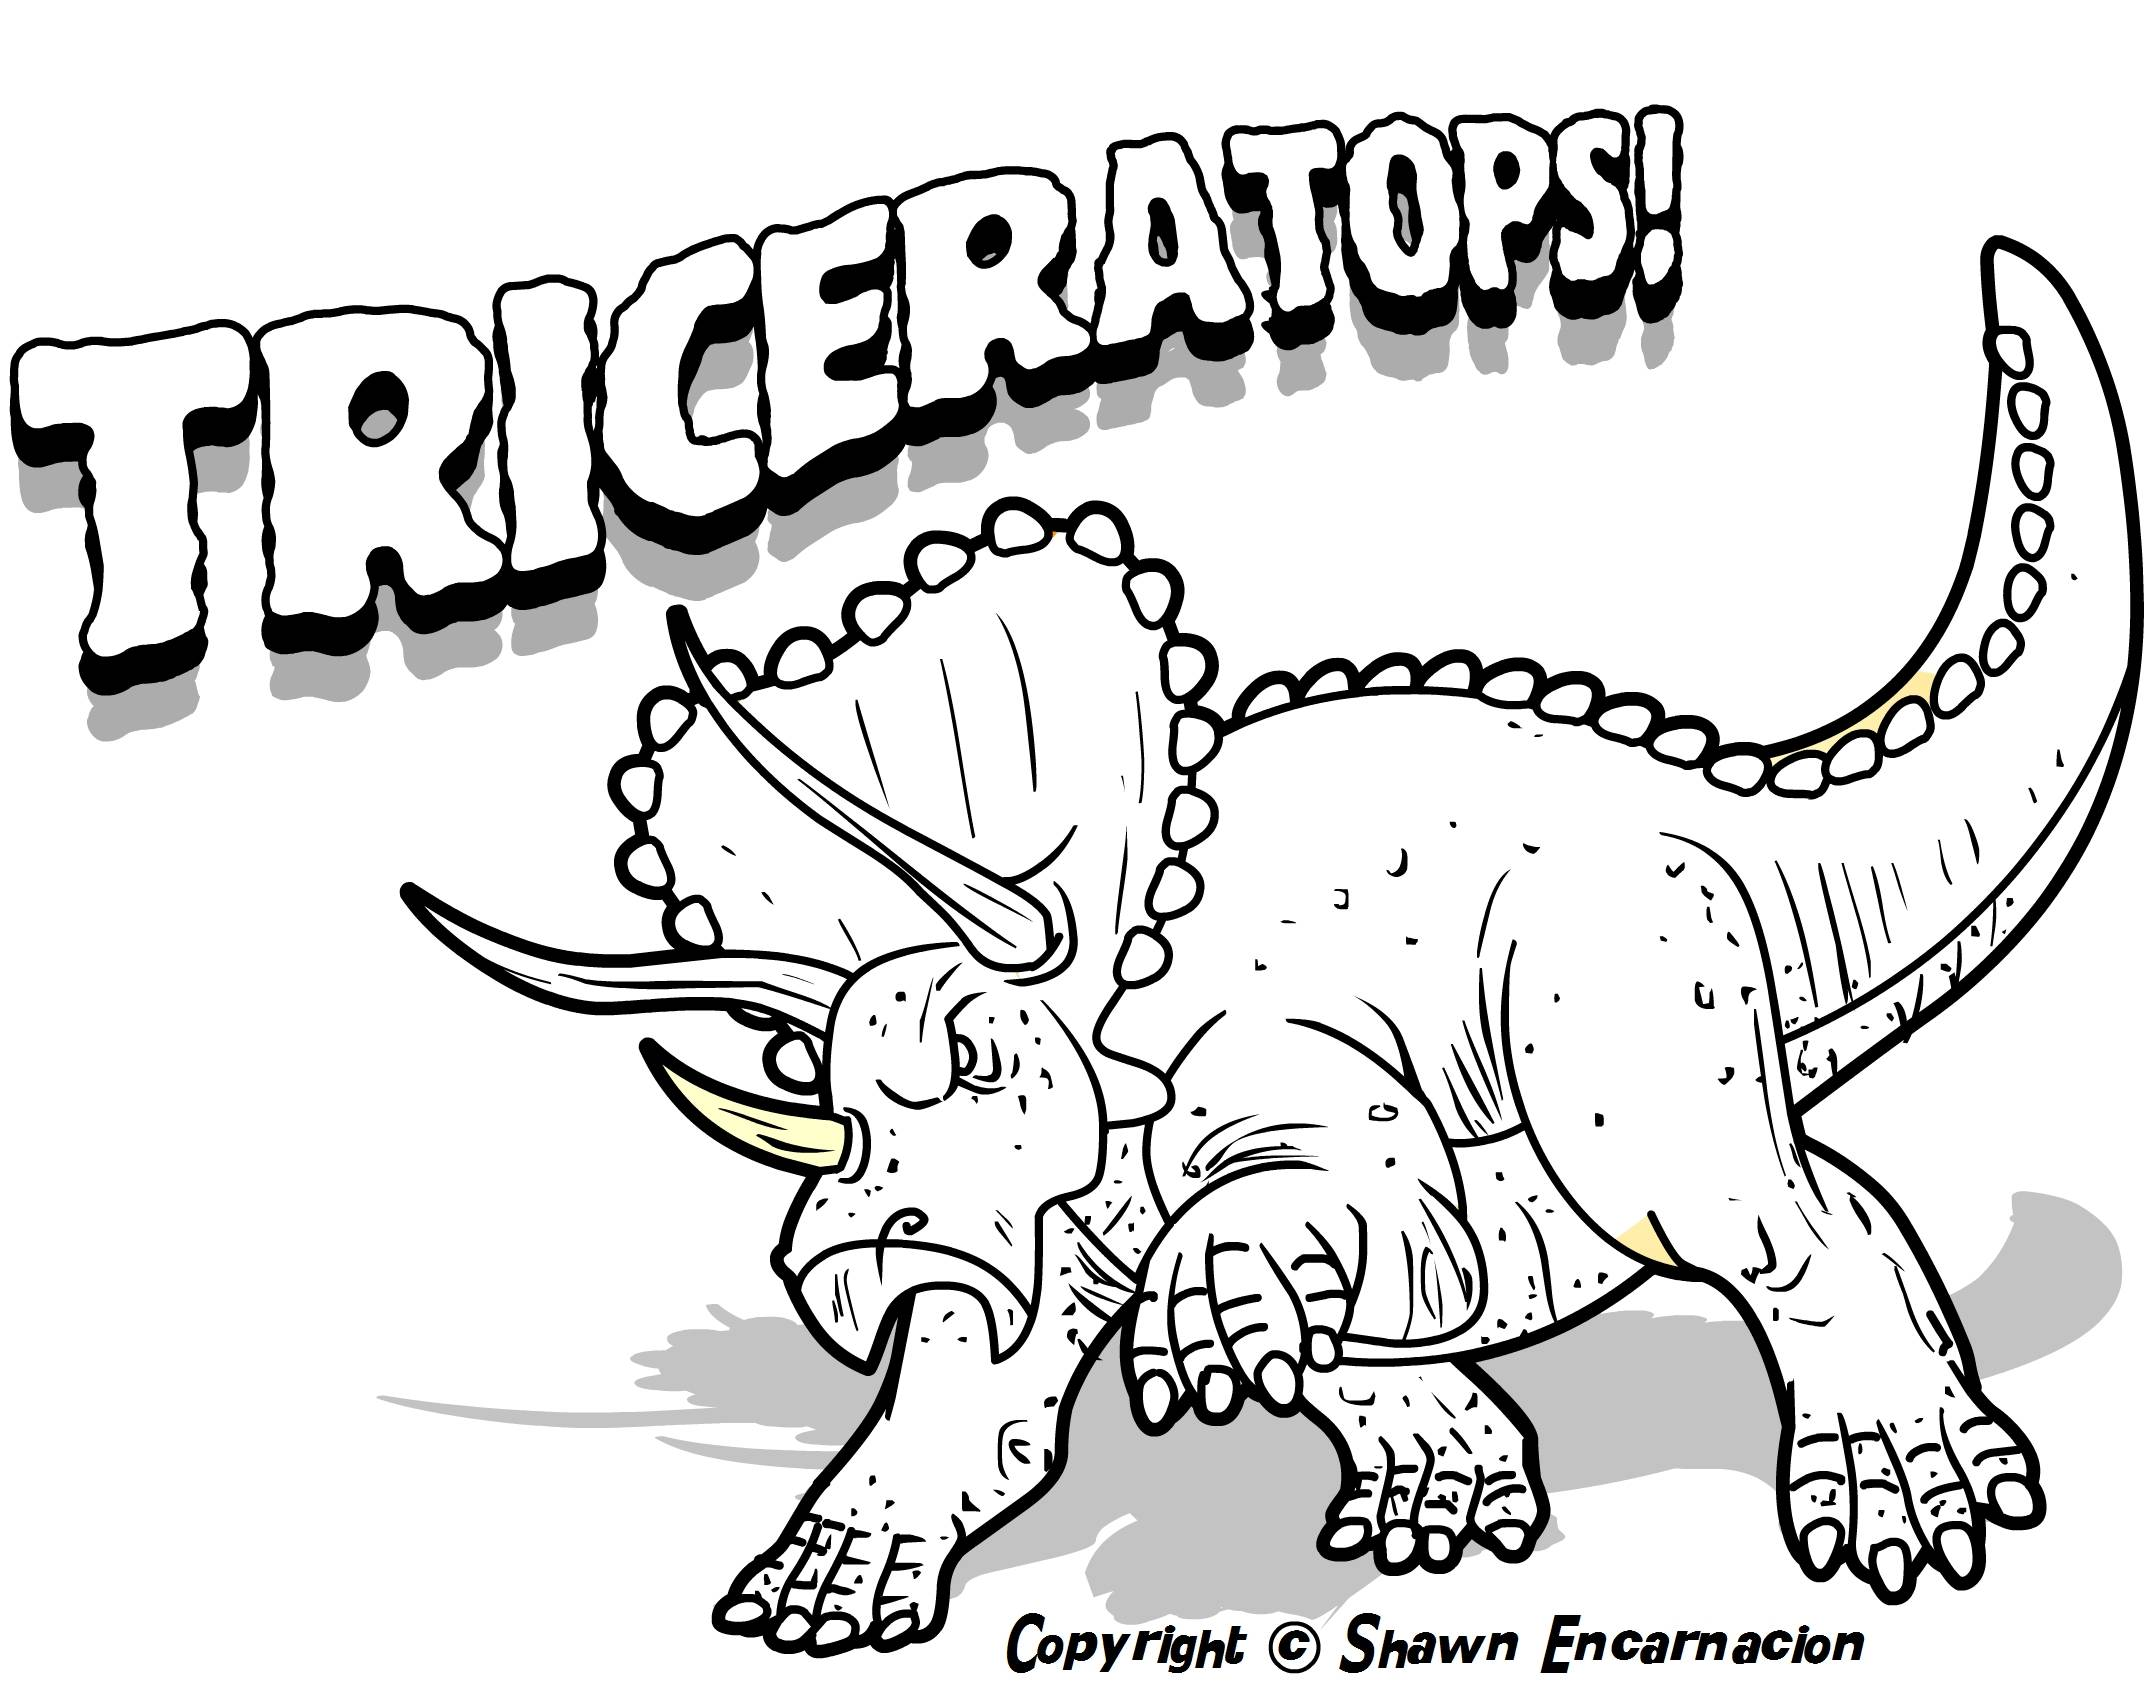 Cartoon dinosaur coloring pages free - Terrible Lizards Dinosaurs Coloring Pages 17 Pictures And Cliparts